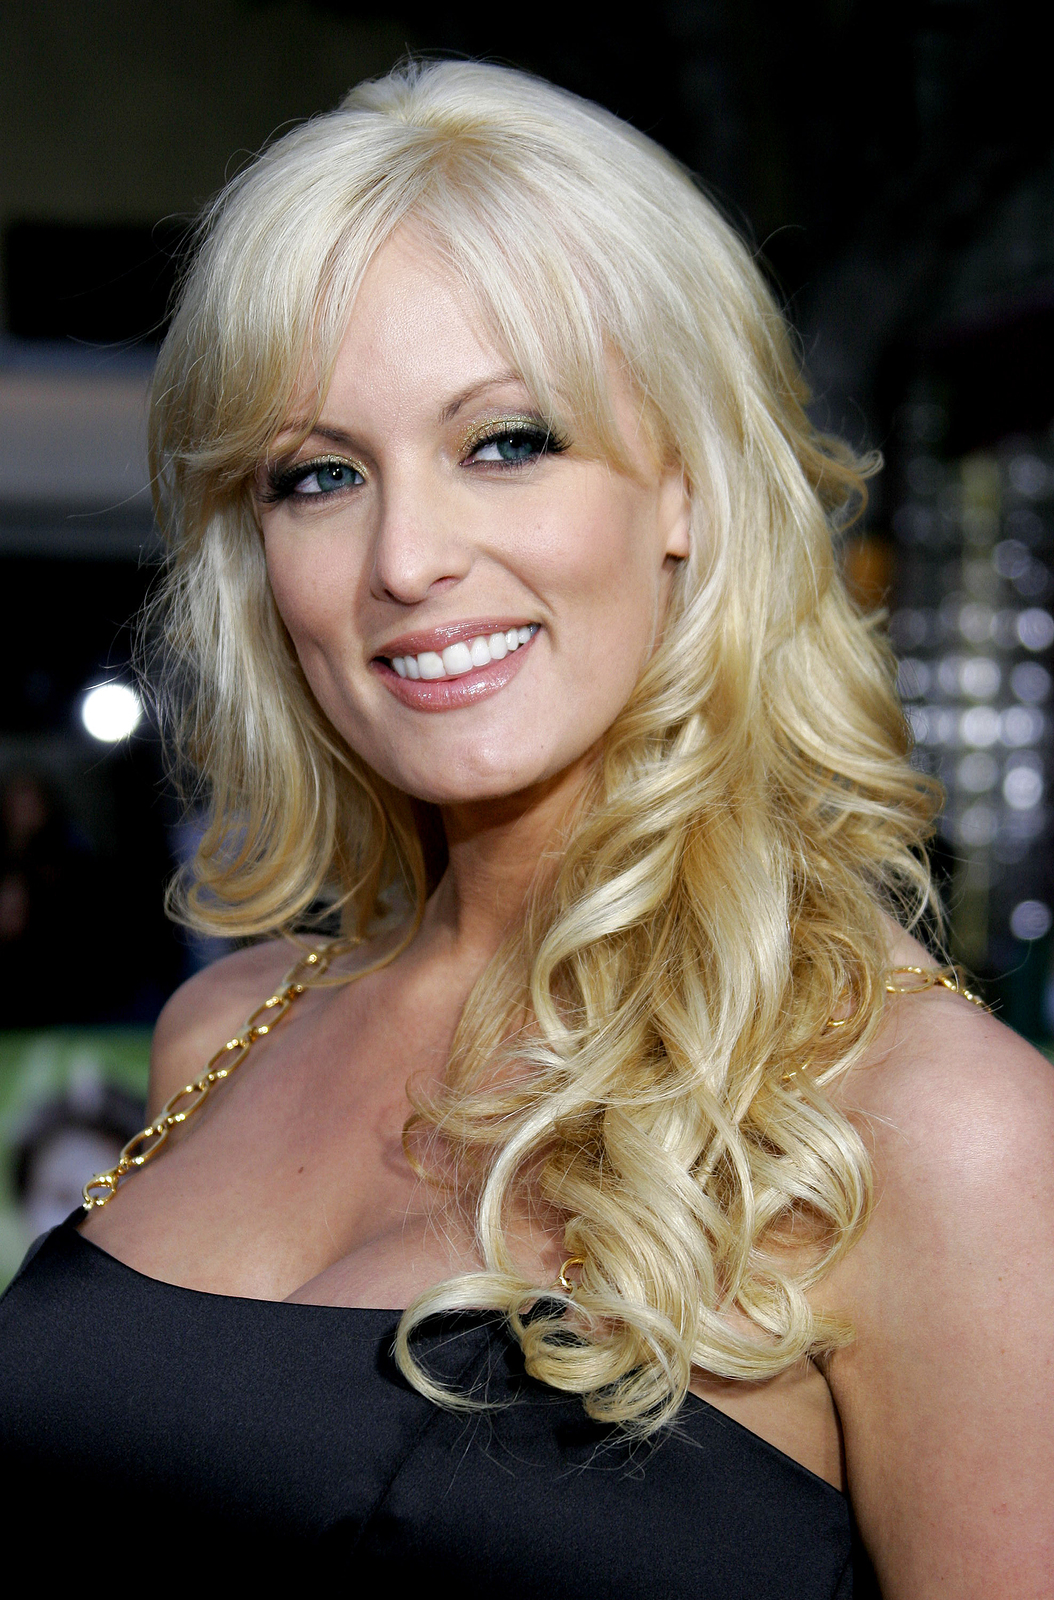 Porn star in Trump controversy will reportedly bring tour to San Diego